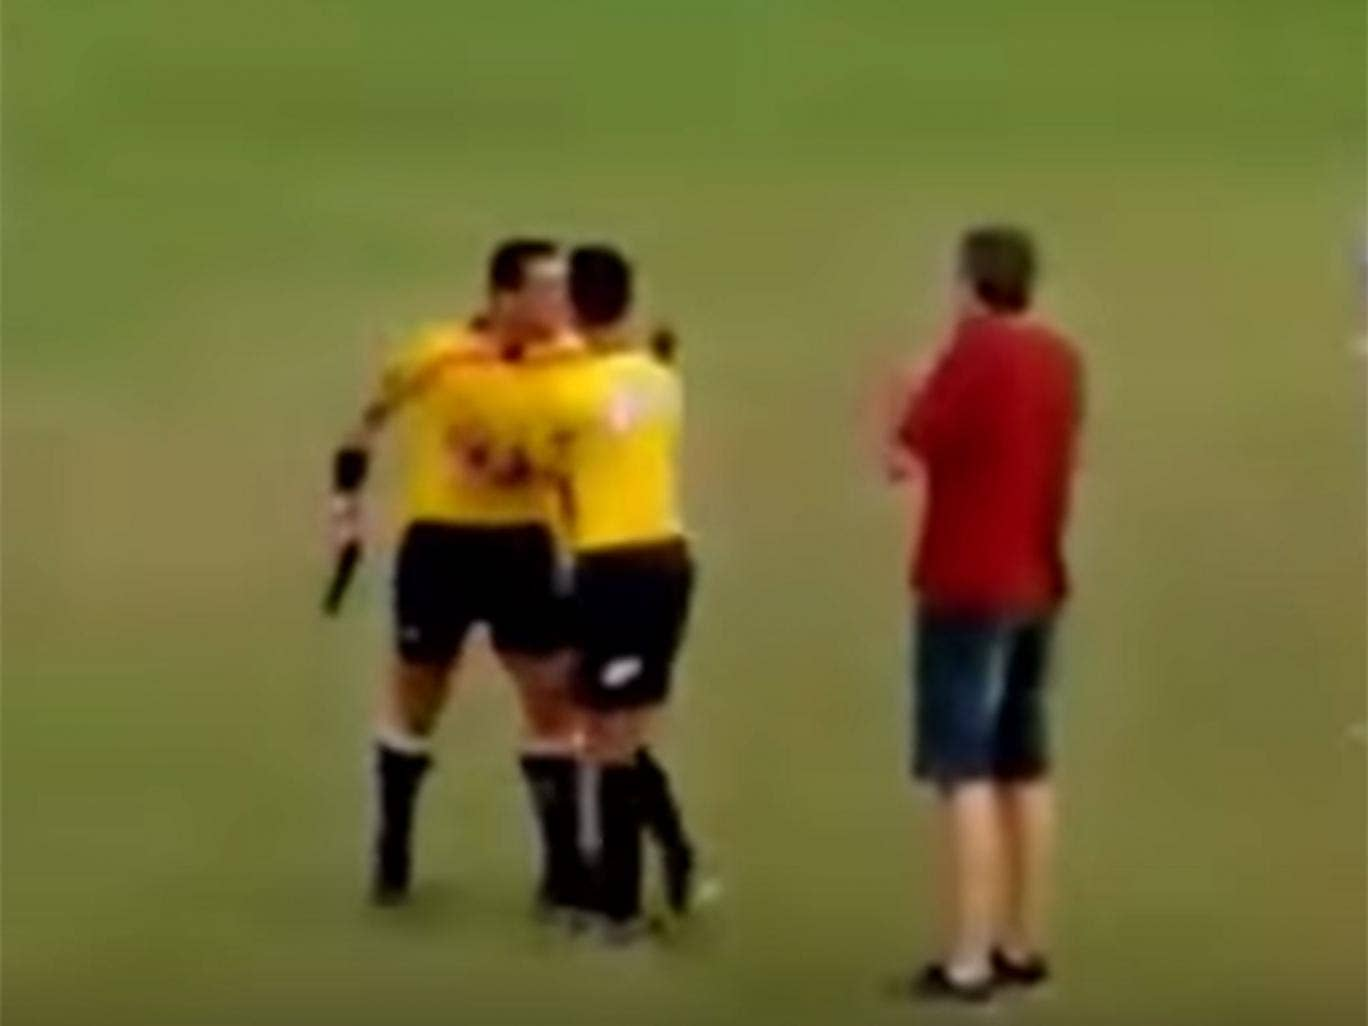 Referee Gabriel Murta pulls a gun during a match